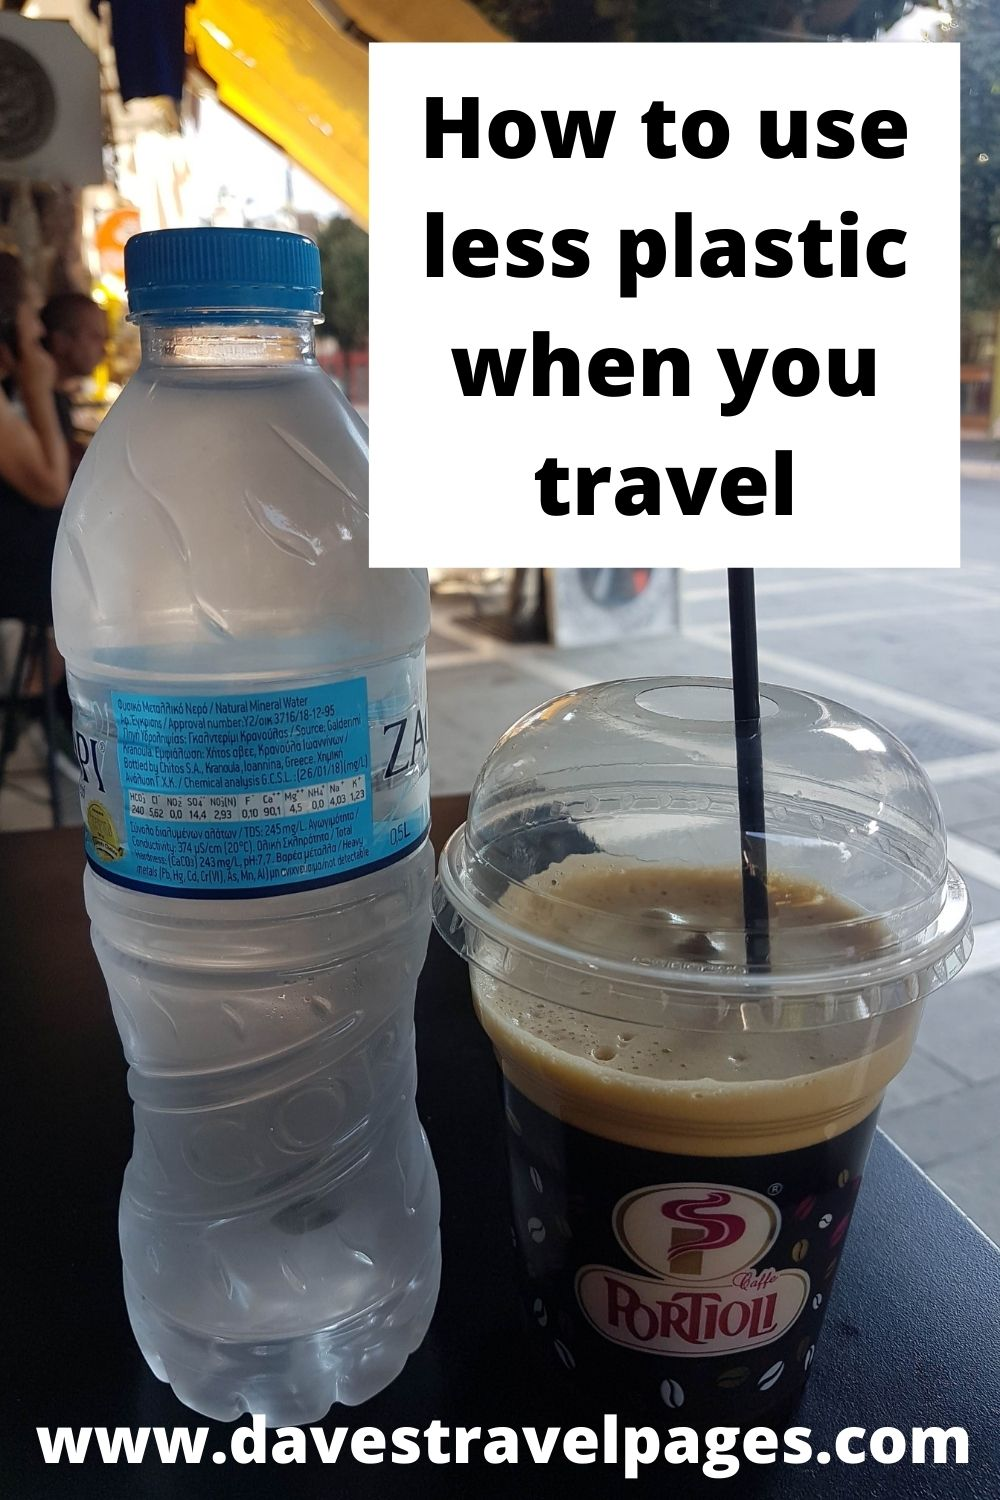 Tips on how to use less plastic when you travel